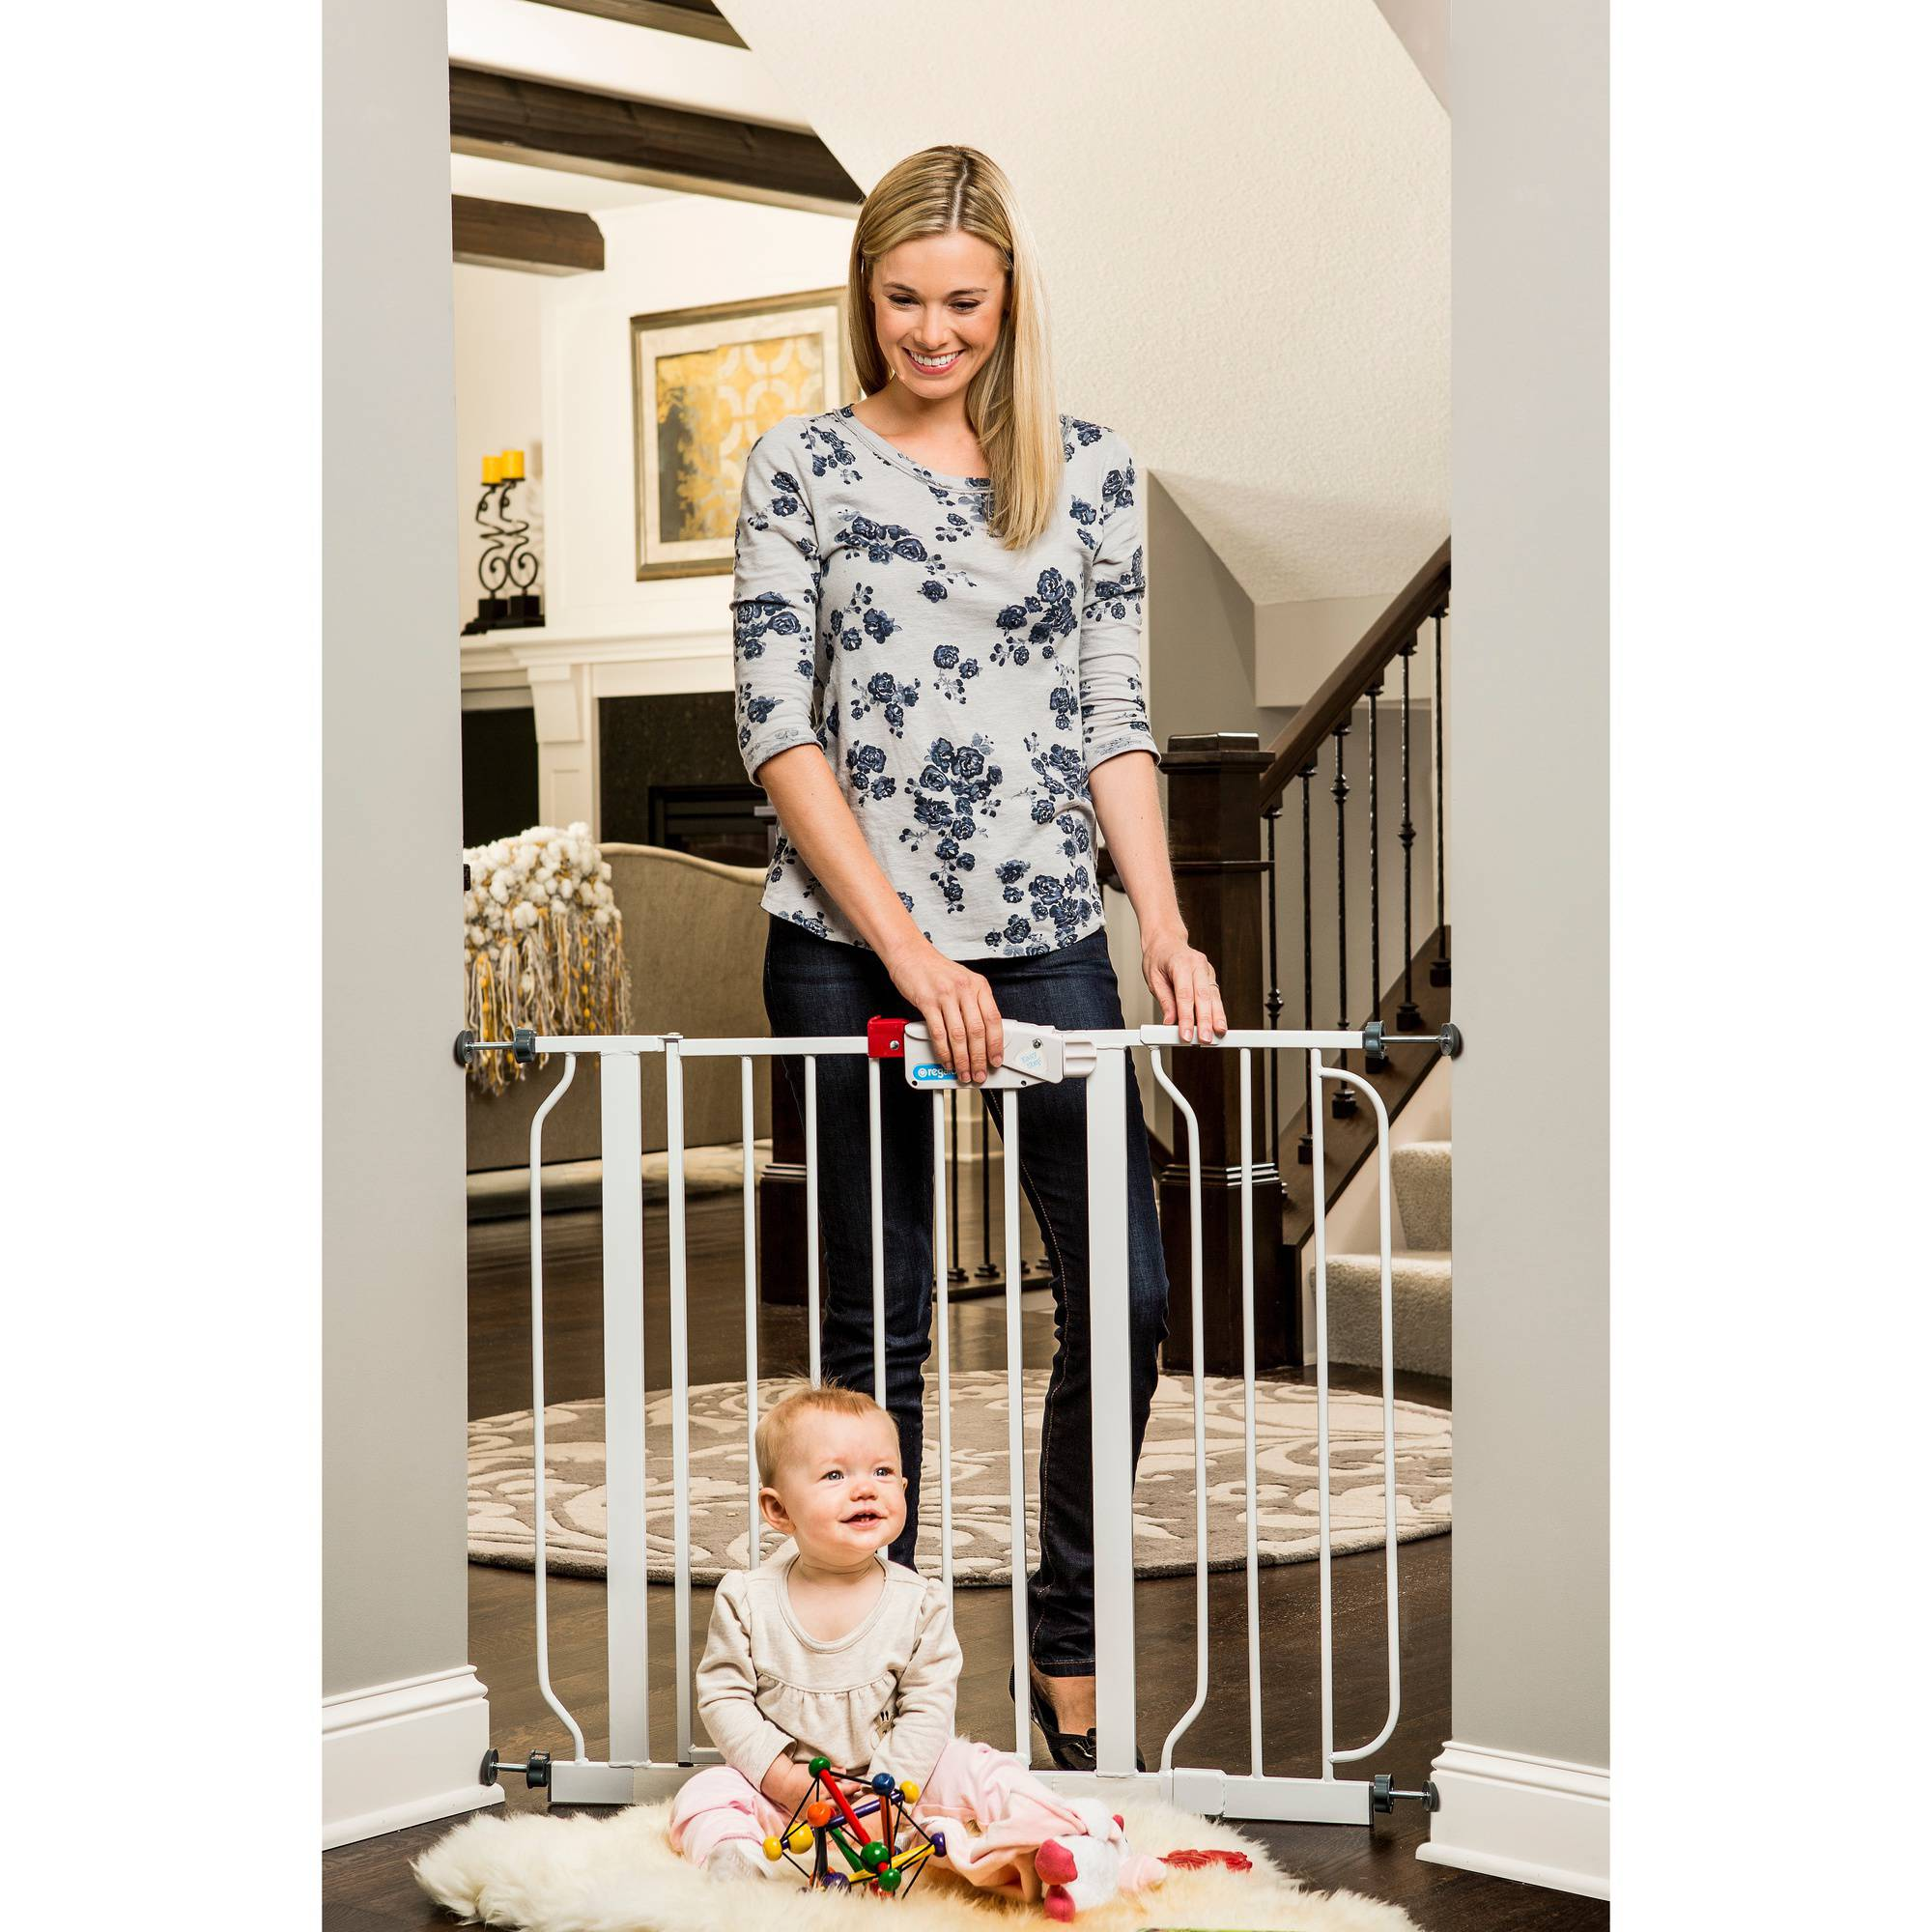 Regalo Easy Step 39-Inch Extra Wide Walk Thru Baby Gate, Includes 6-Inch Extension Kit, 4 Pack Pressure Mount Kit and 4 Pack Wall Mount Kit